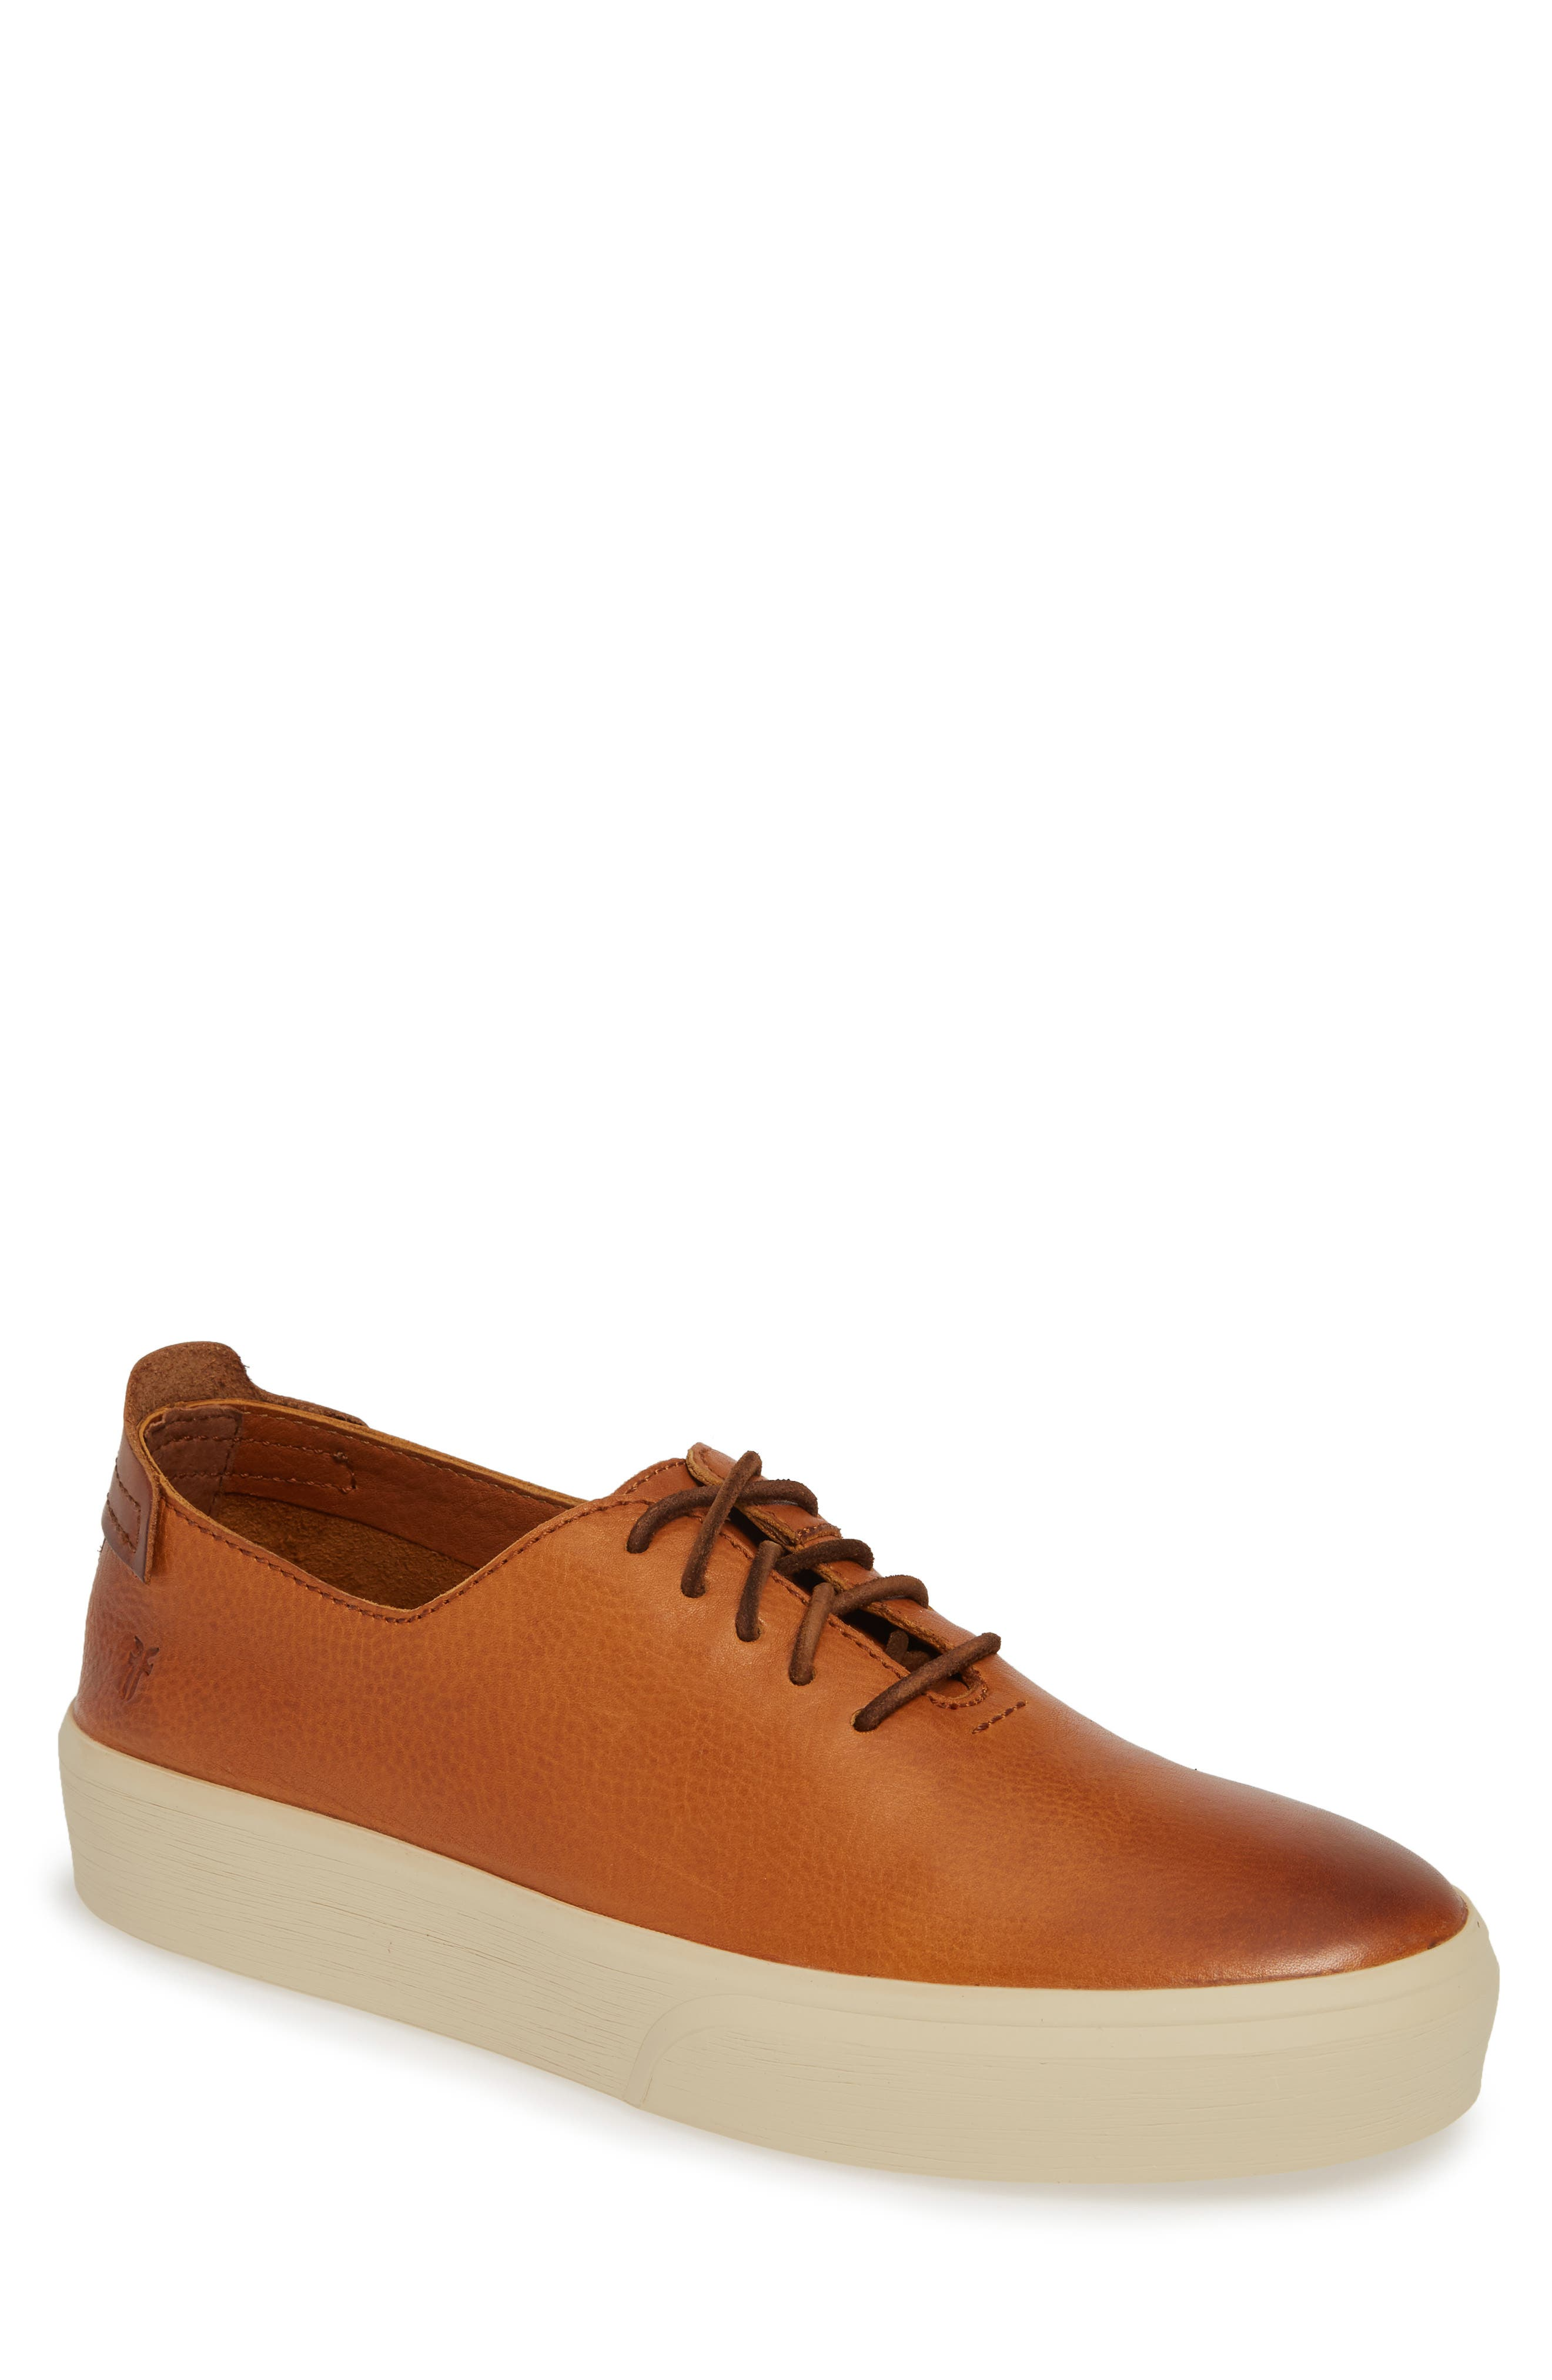 FRYE Beacon Sneaker, Main, color, CARAMEL LEATHER